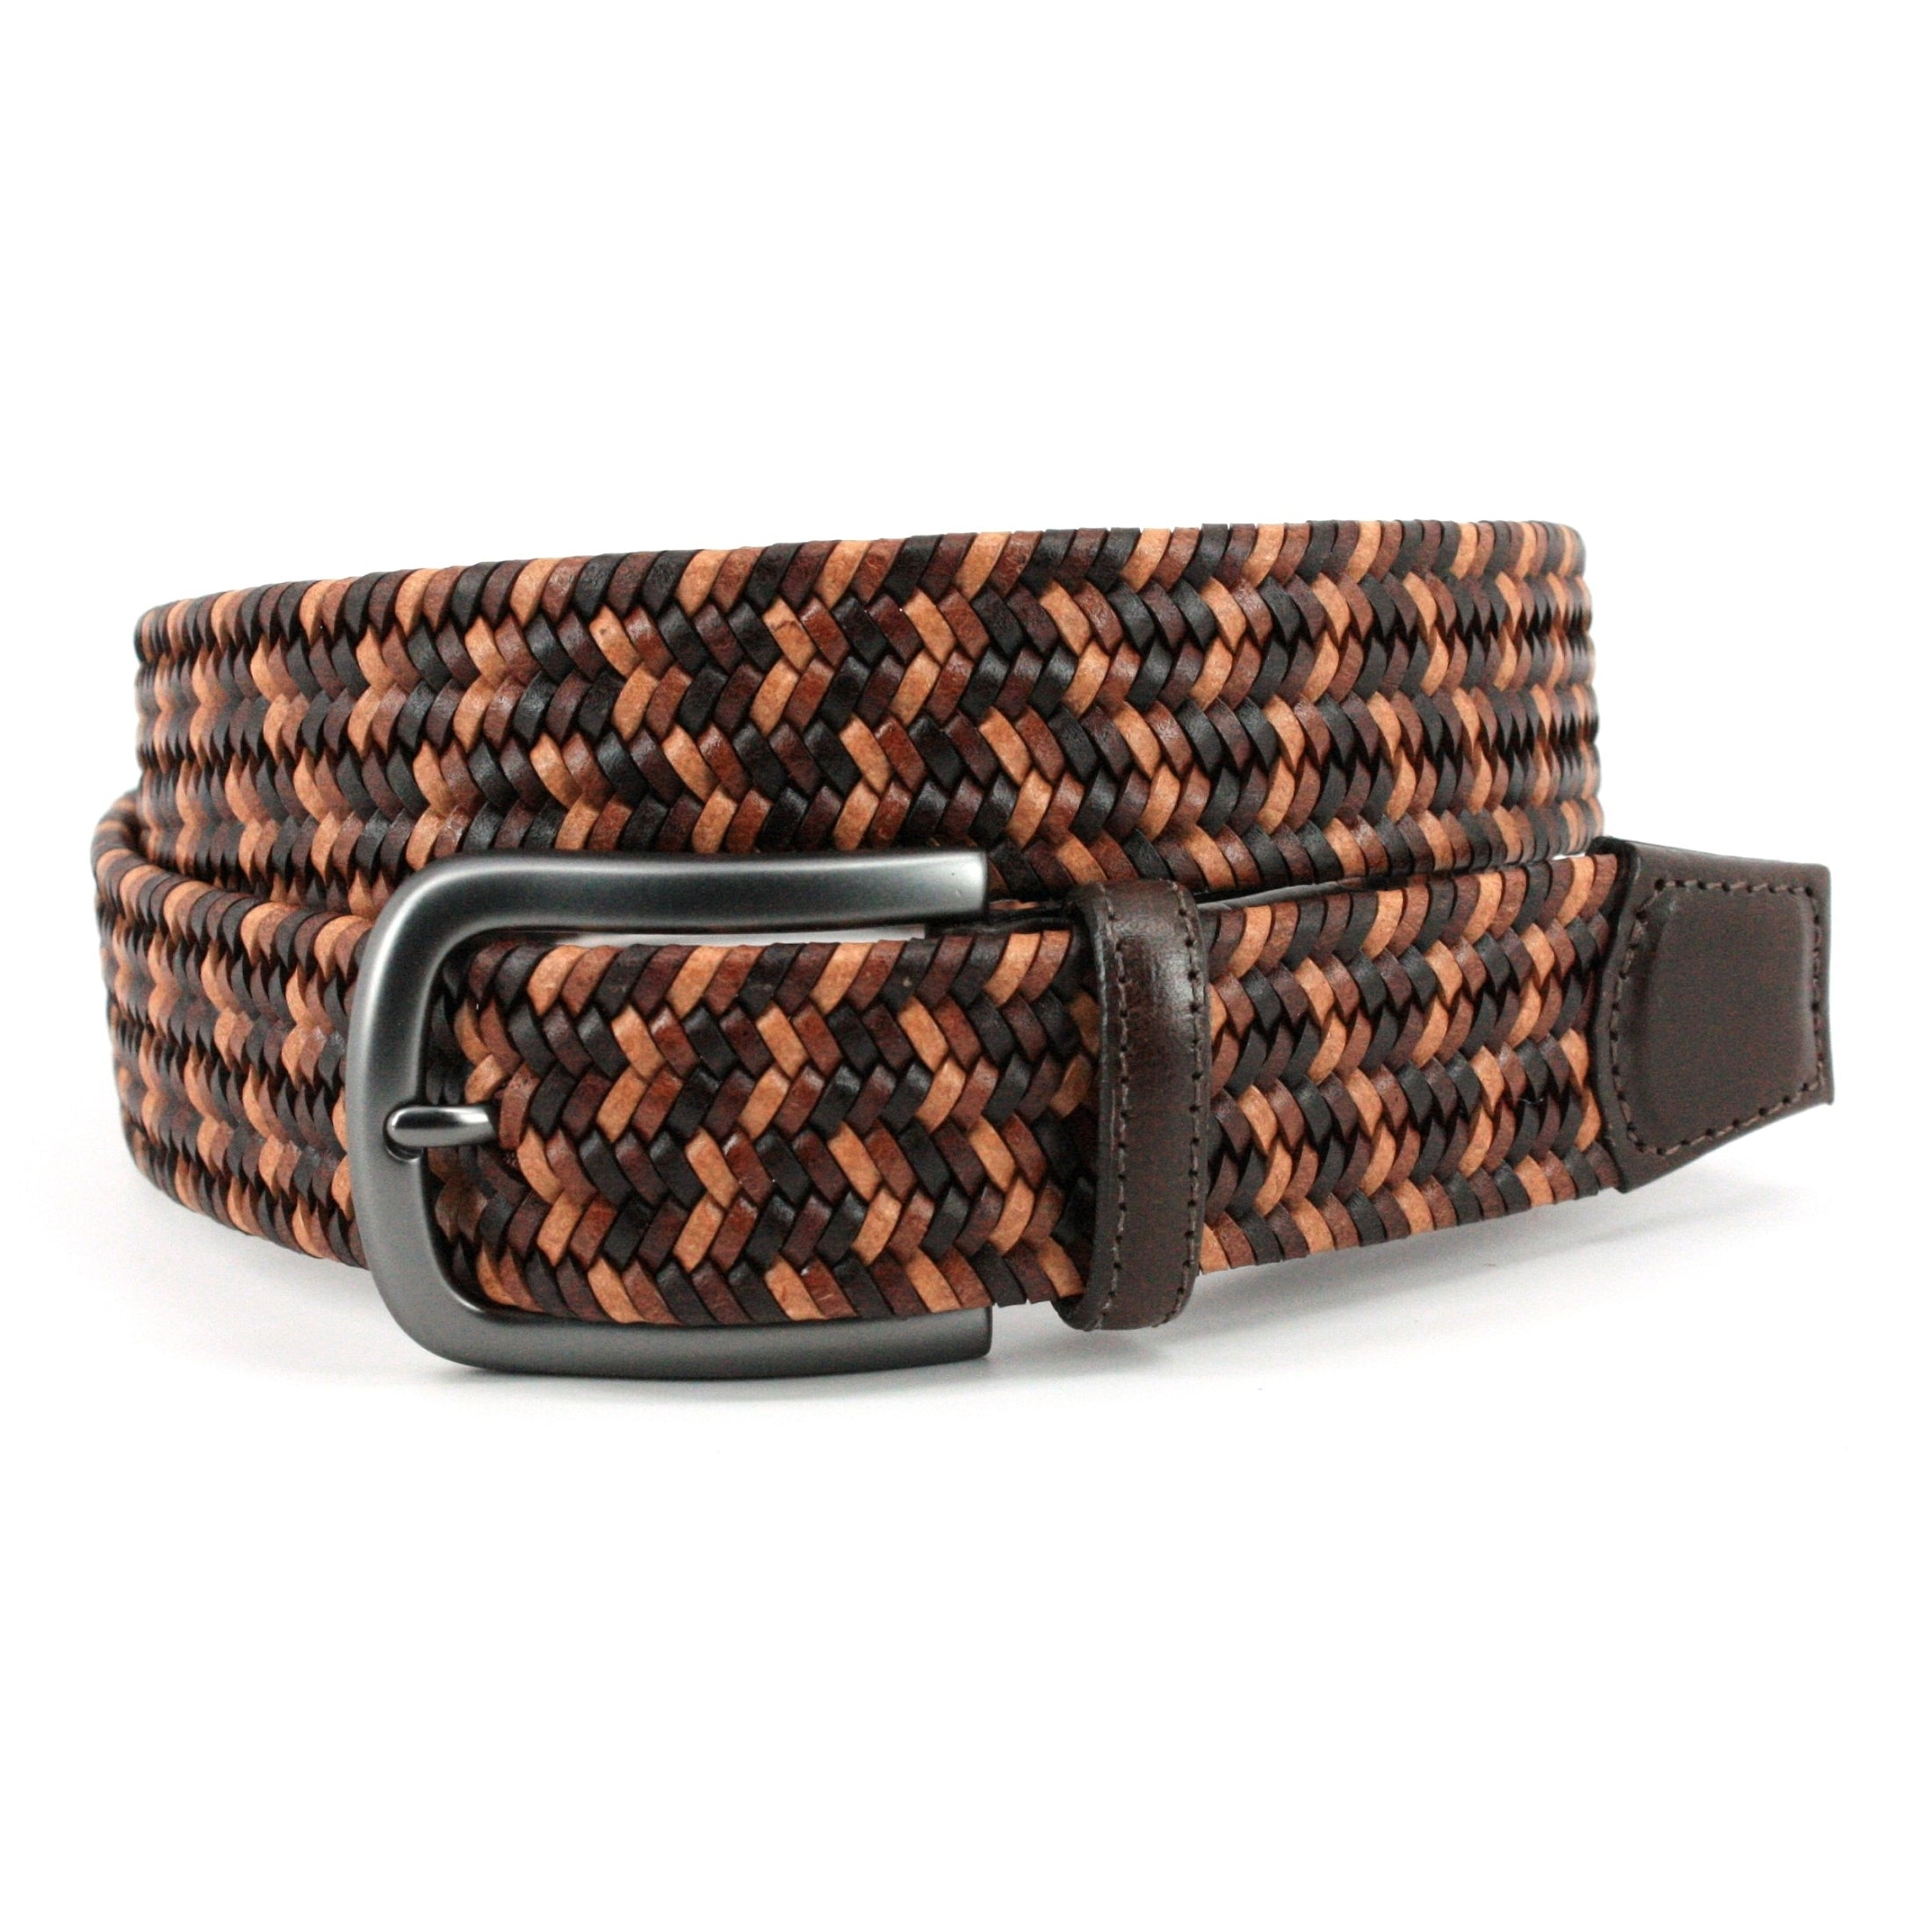 Torino Italian Mini Strand Woven Stretch Leather Belt